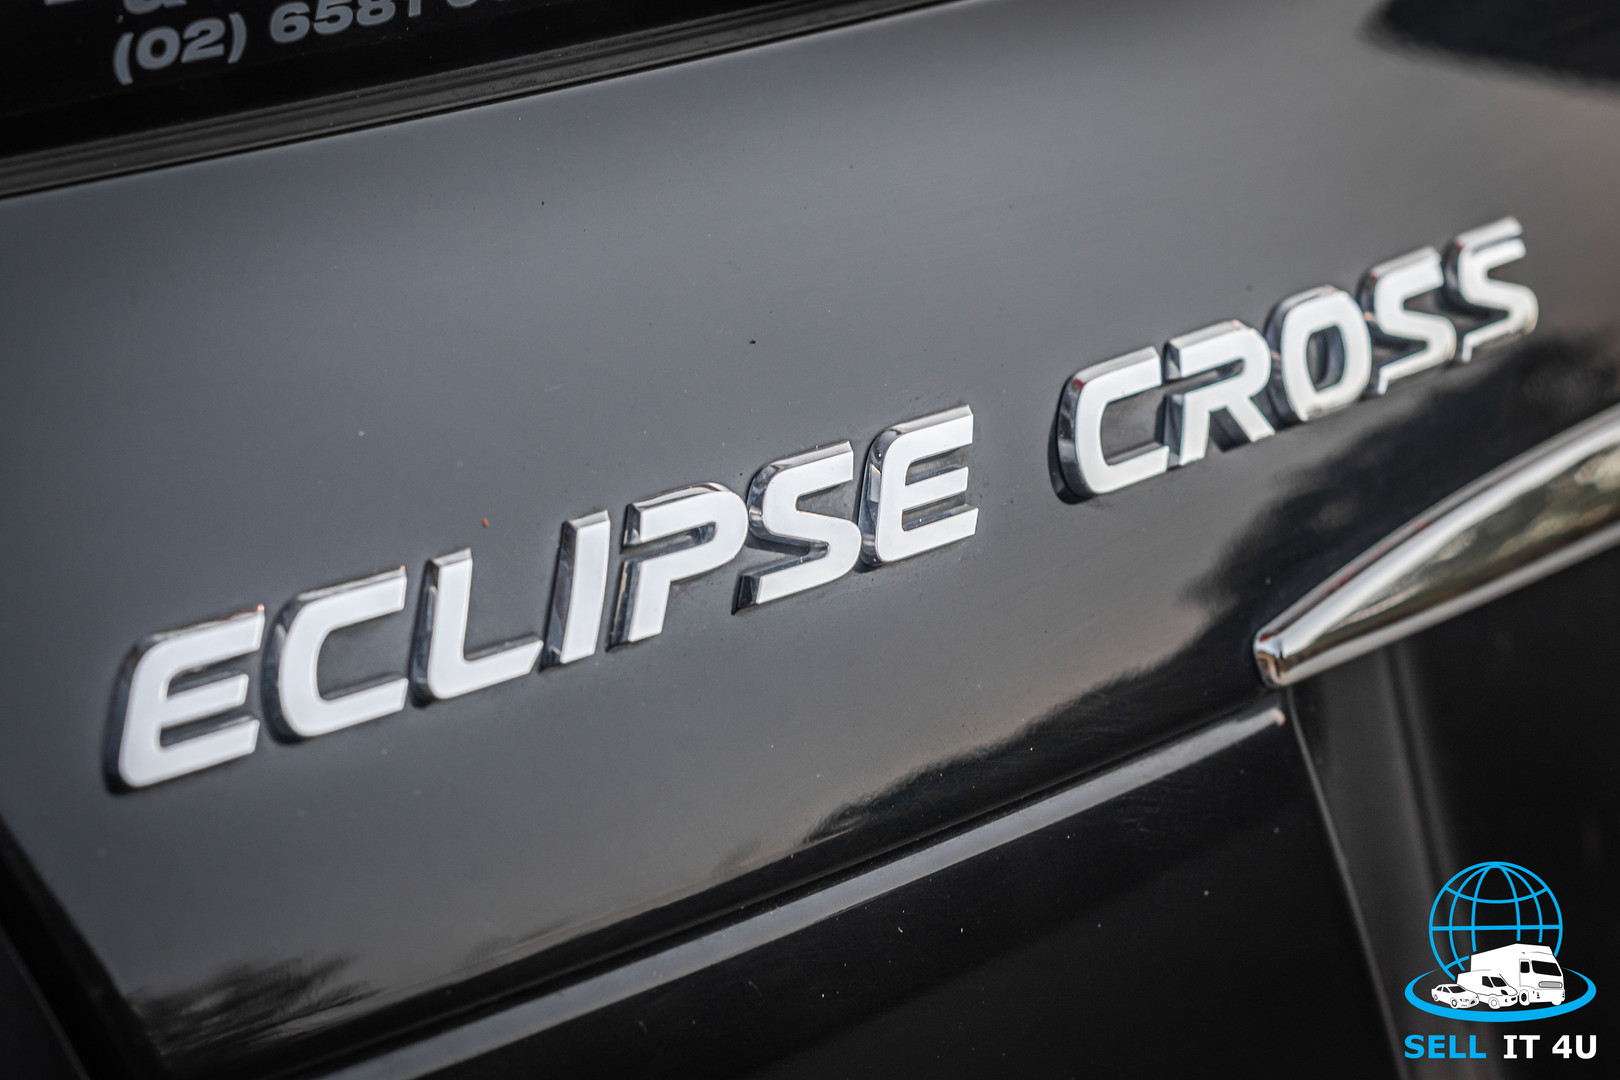 Eclipse Cross-2522.jpg